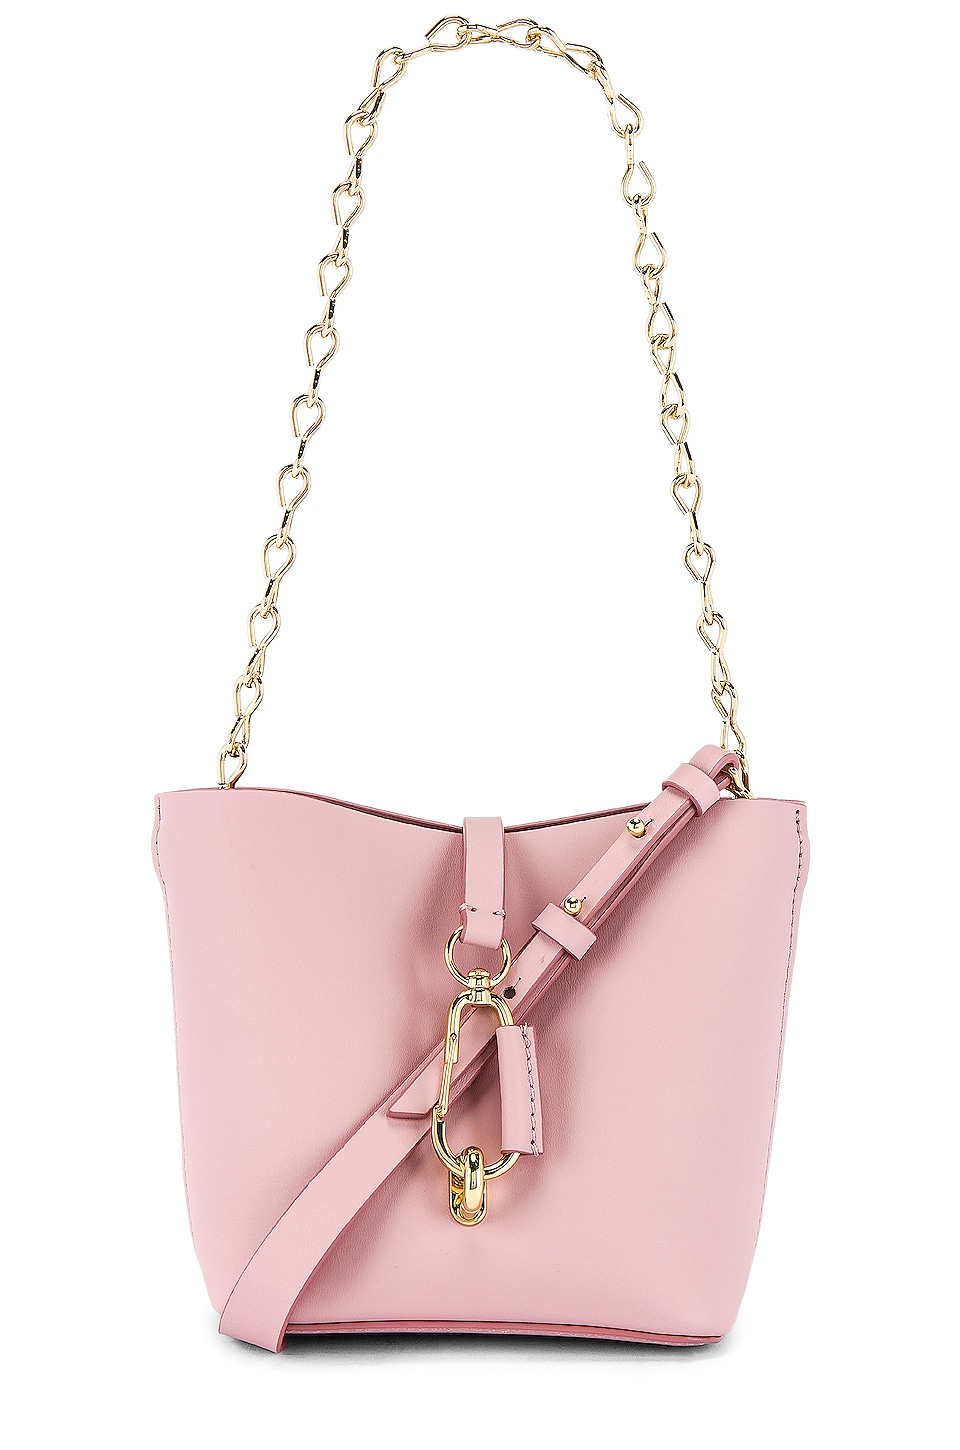 Zac Zac Posen Belay Mini Hobo Crossbody in Woodrose